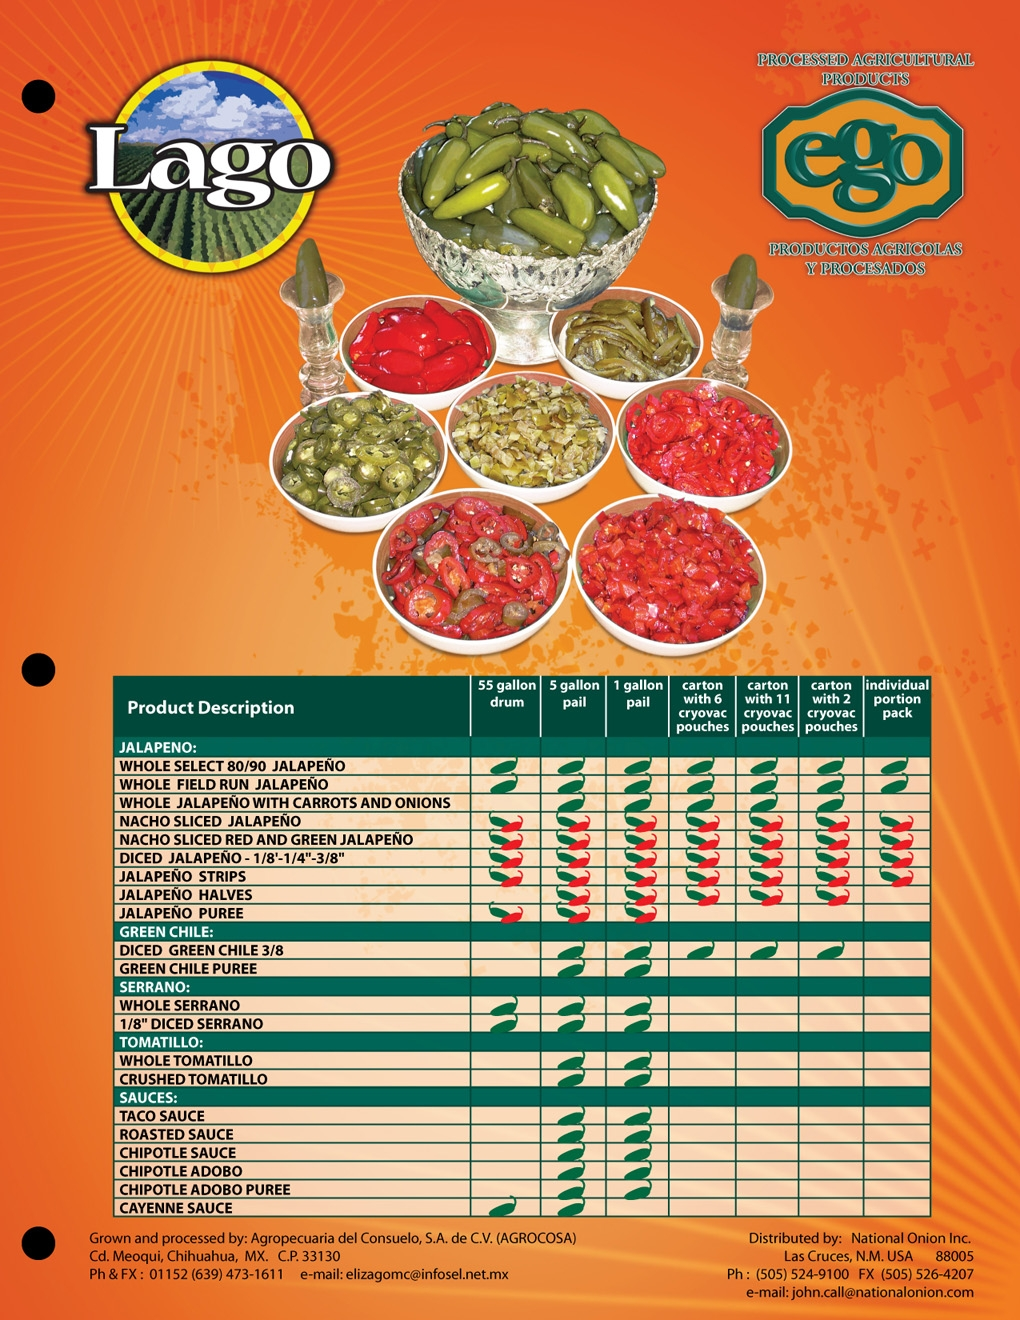 Lago chart - products